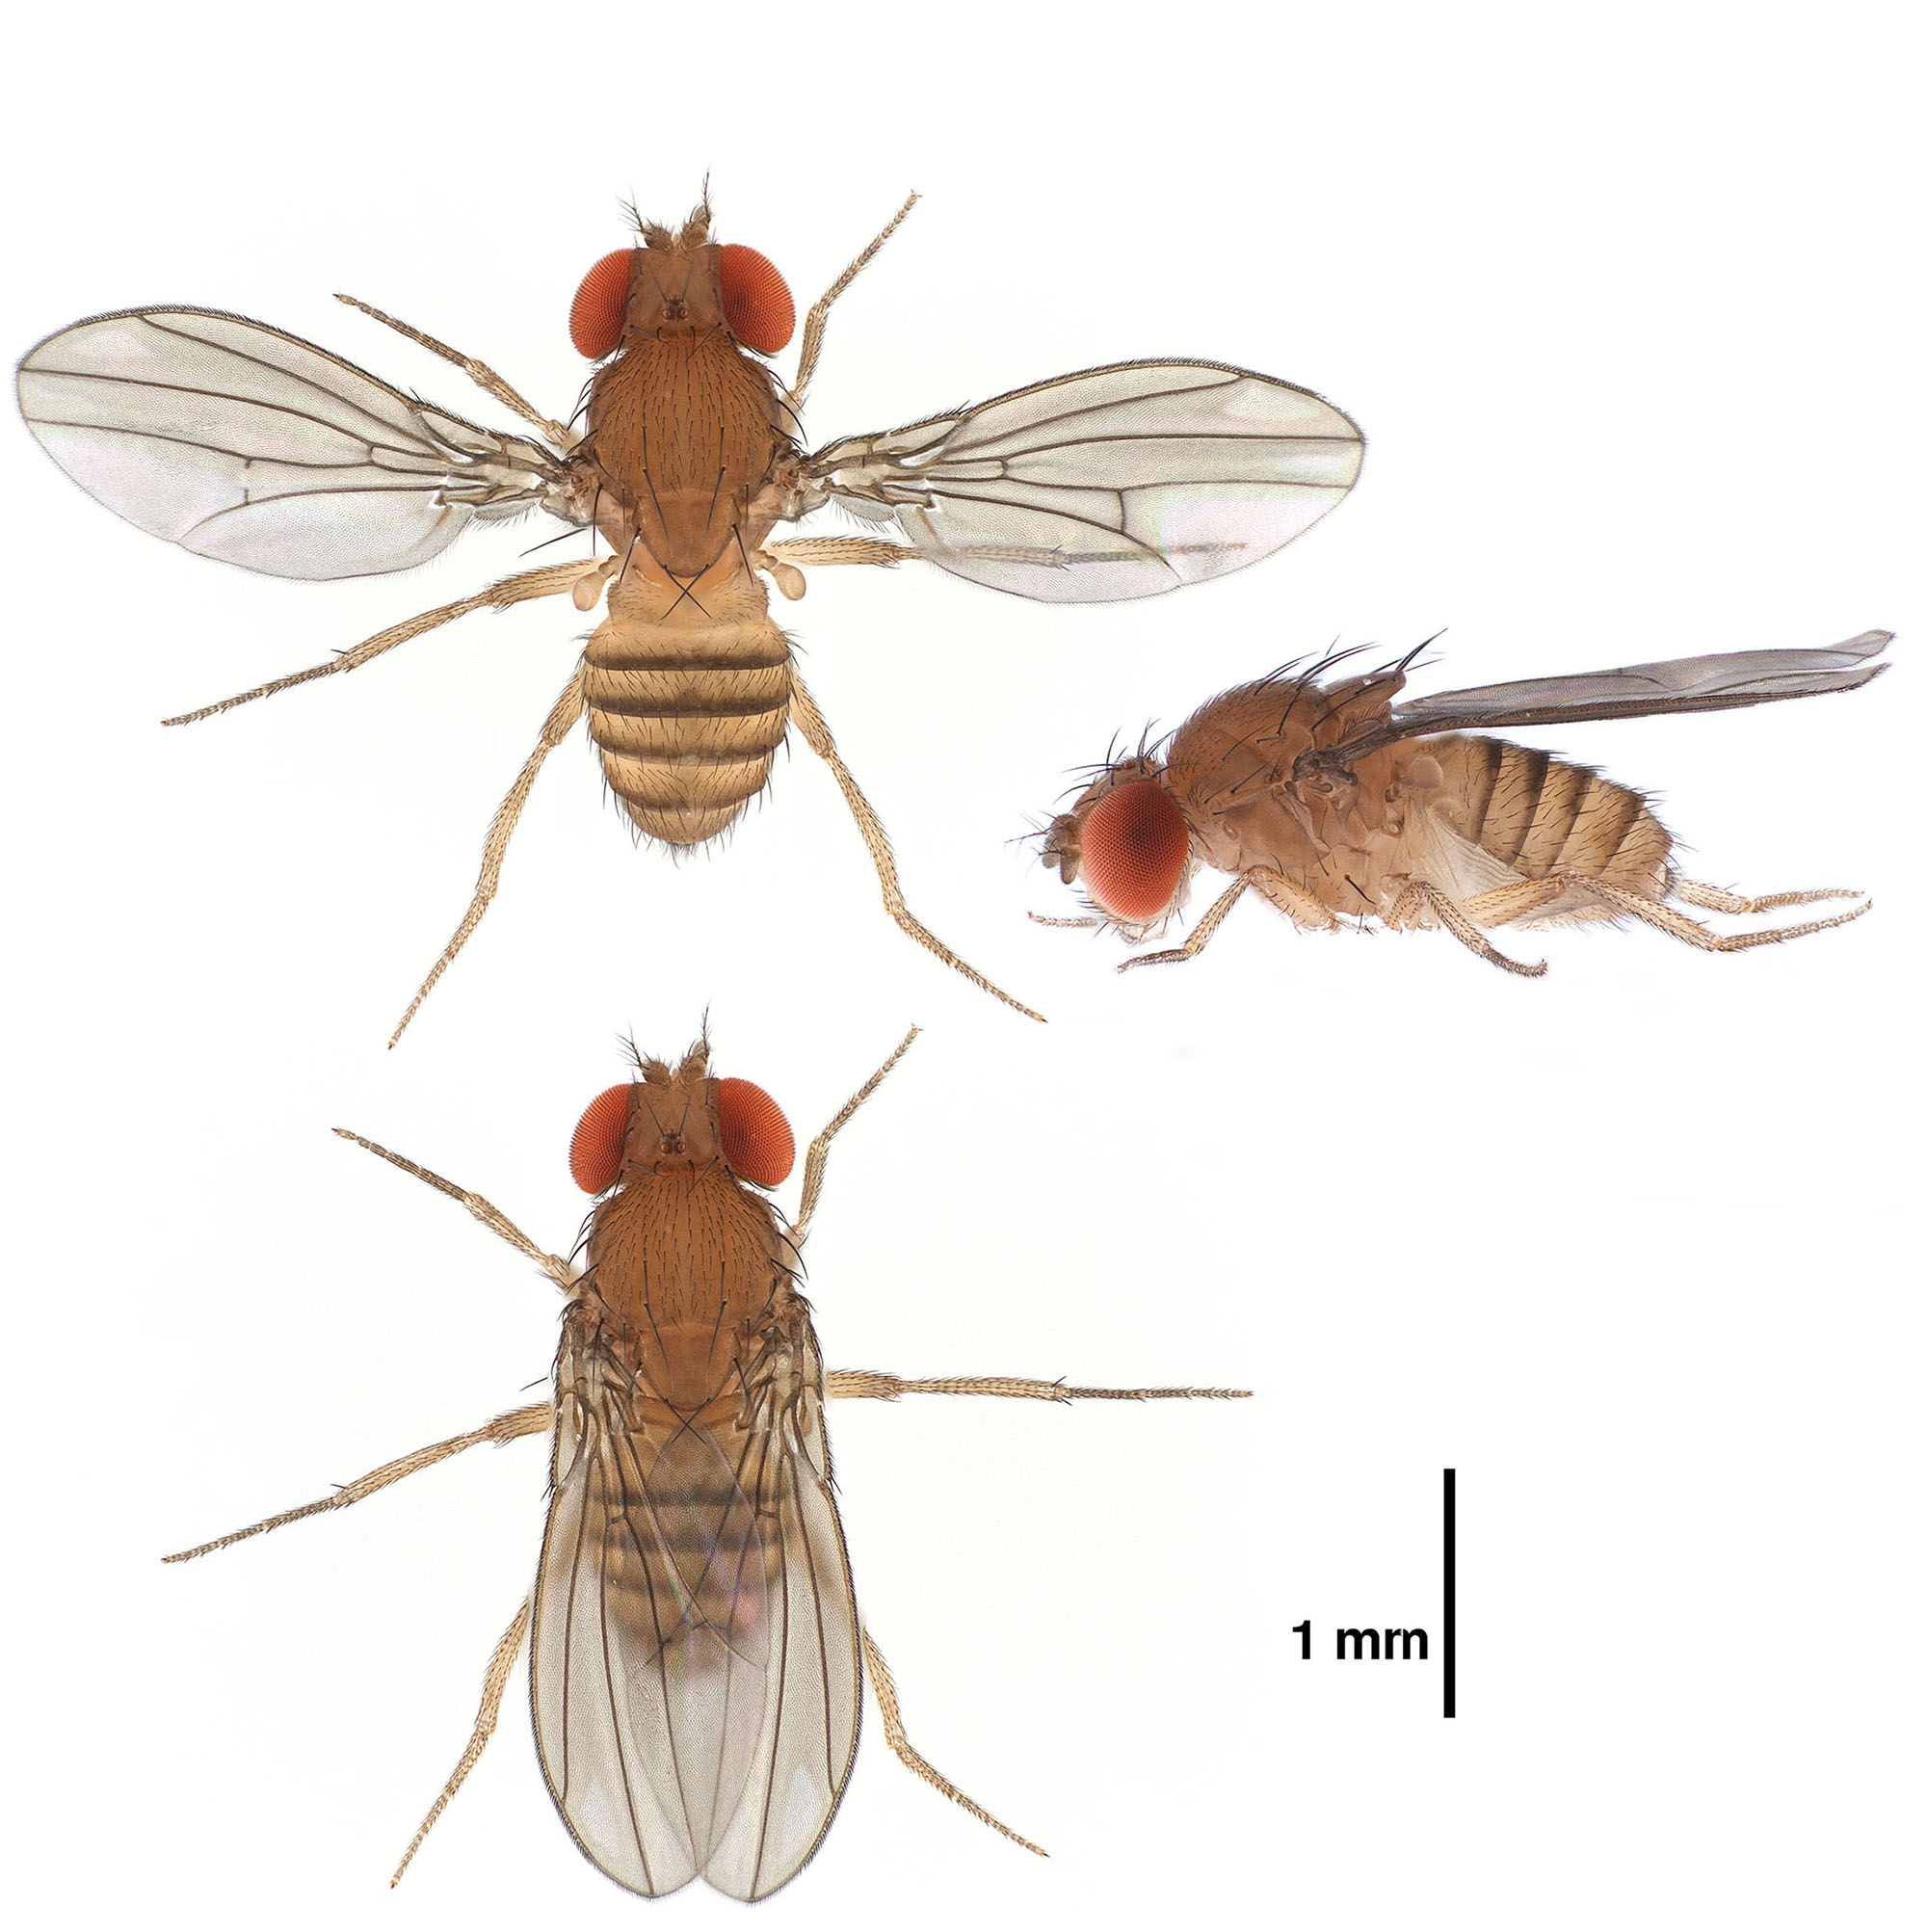 Drosophila sucinea